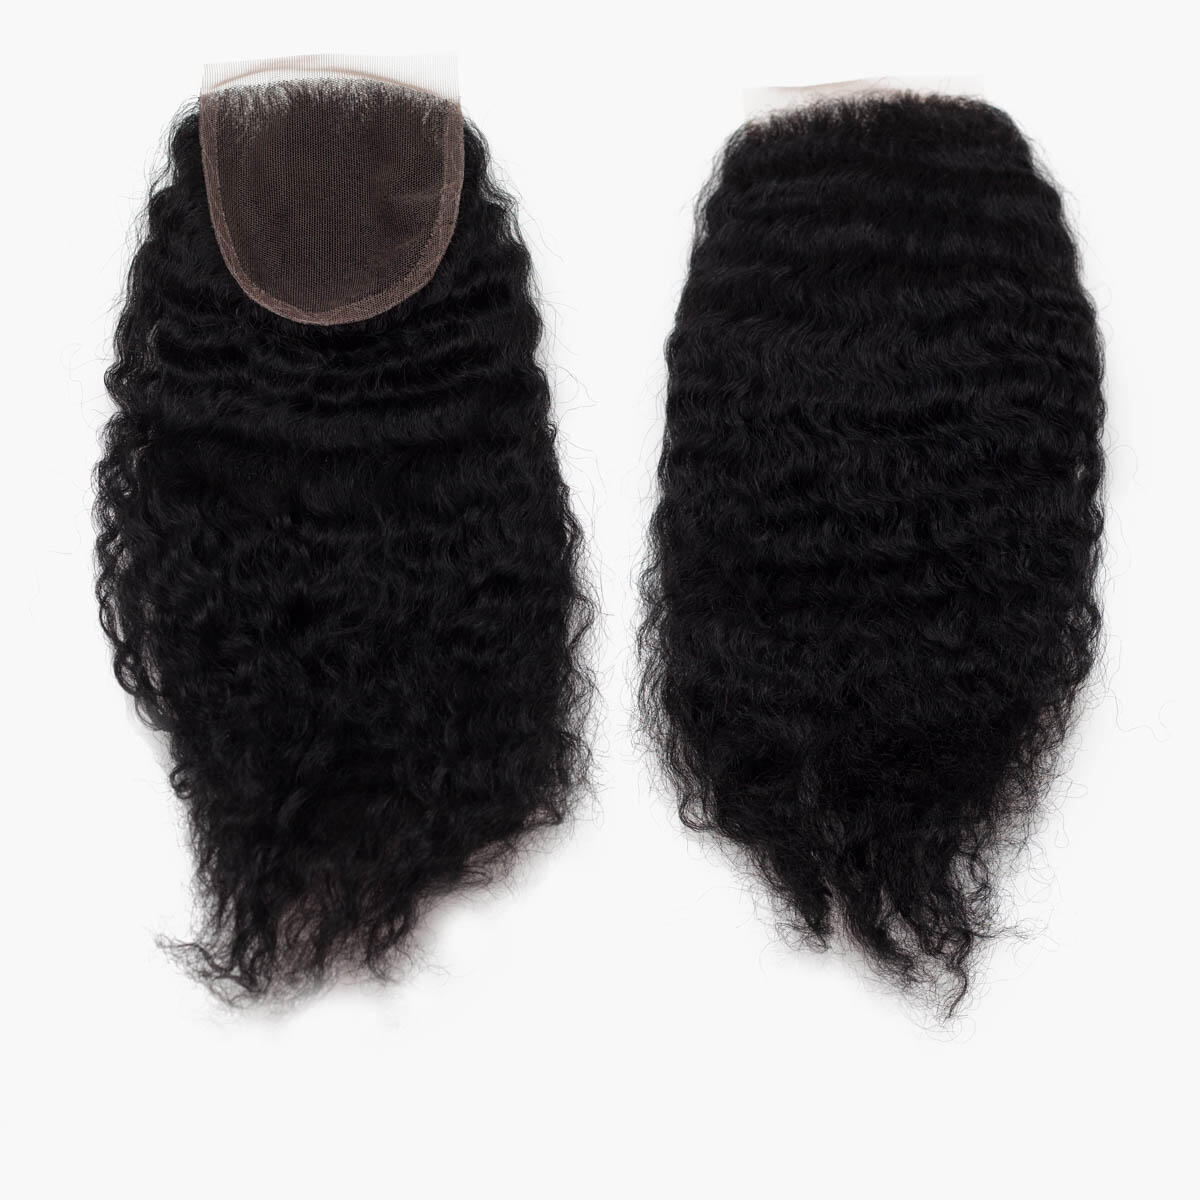 Lace Closure Coily Curl 1.0 Black 35 cm